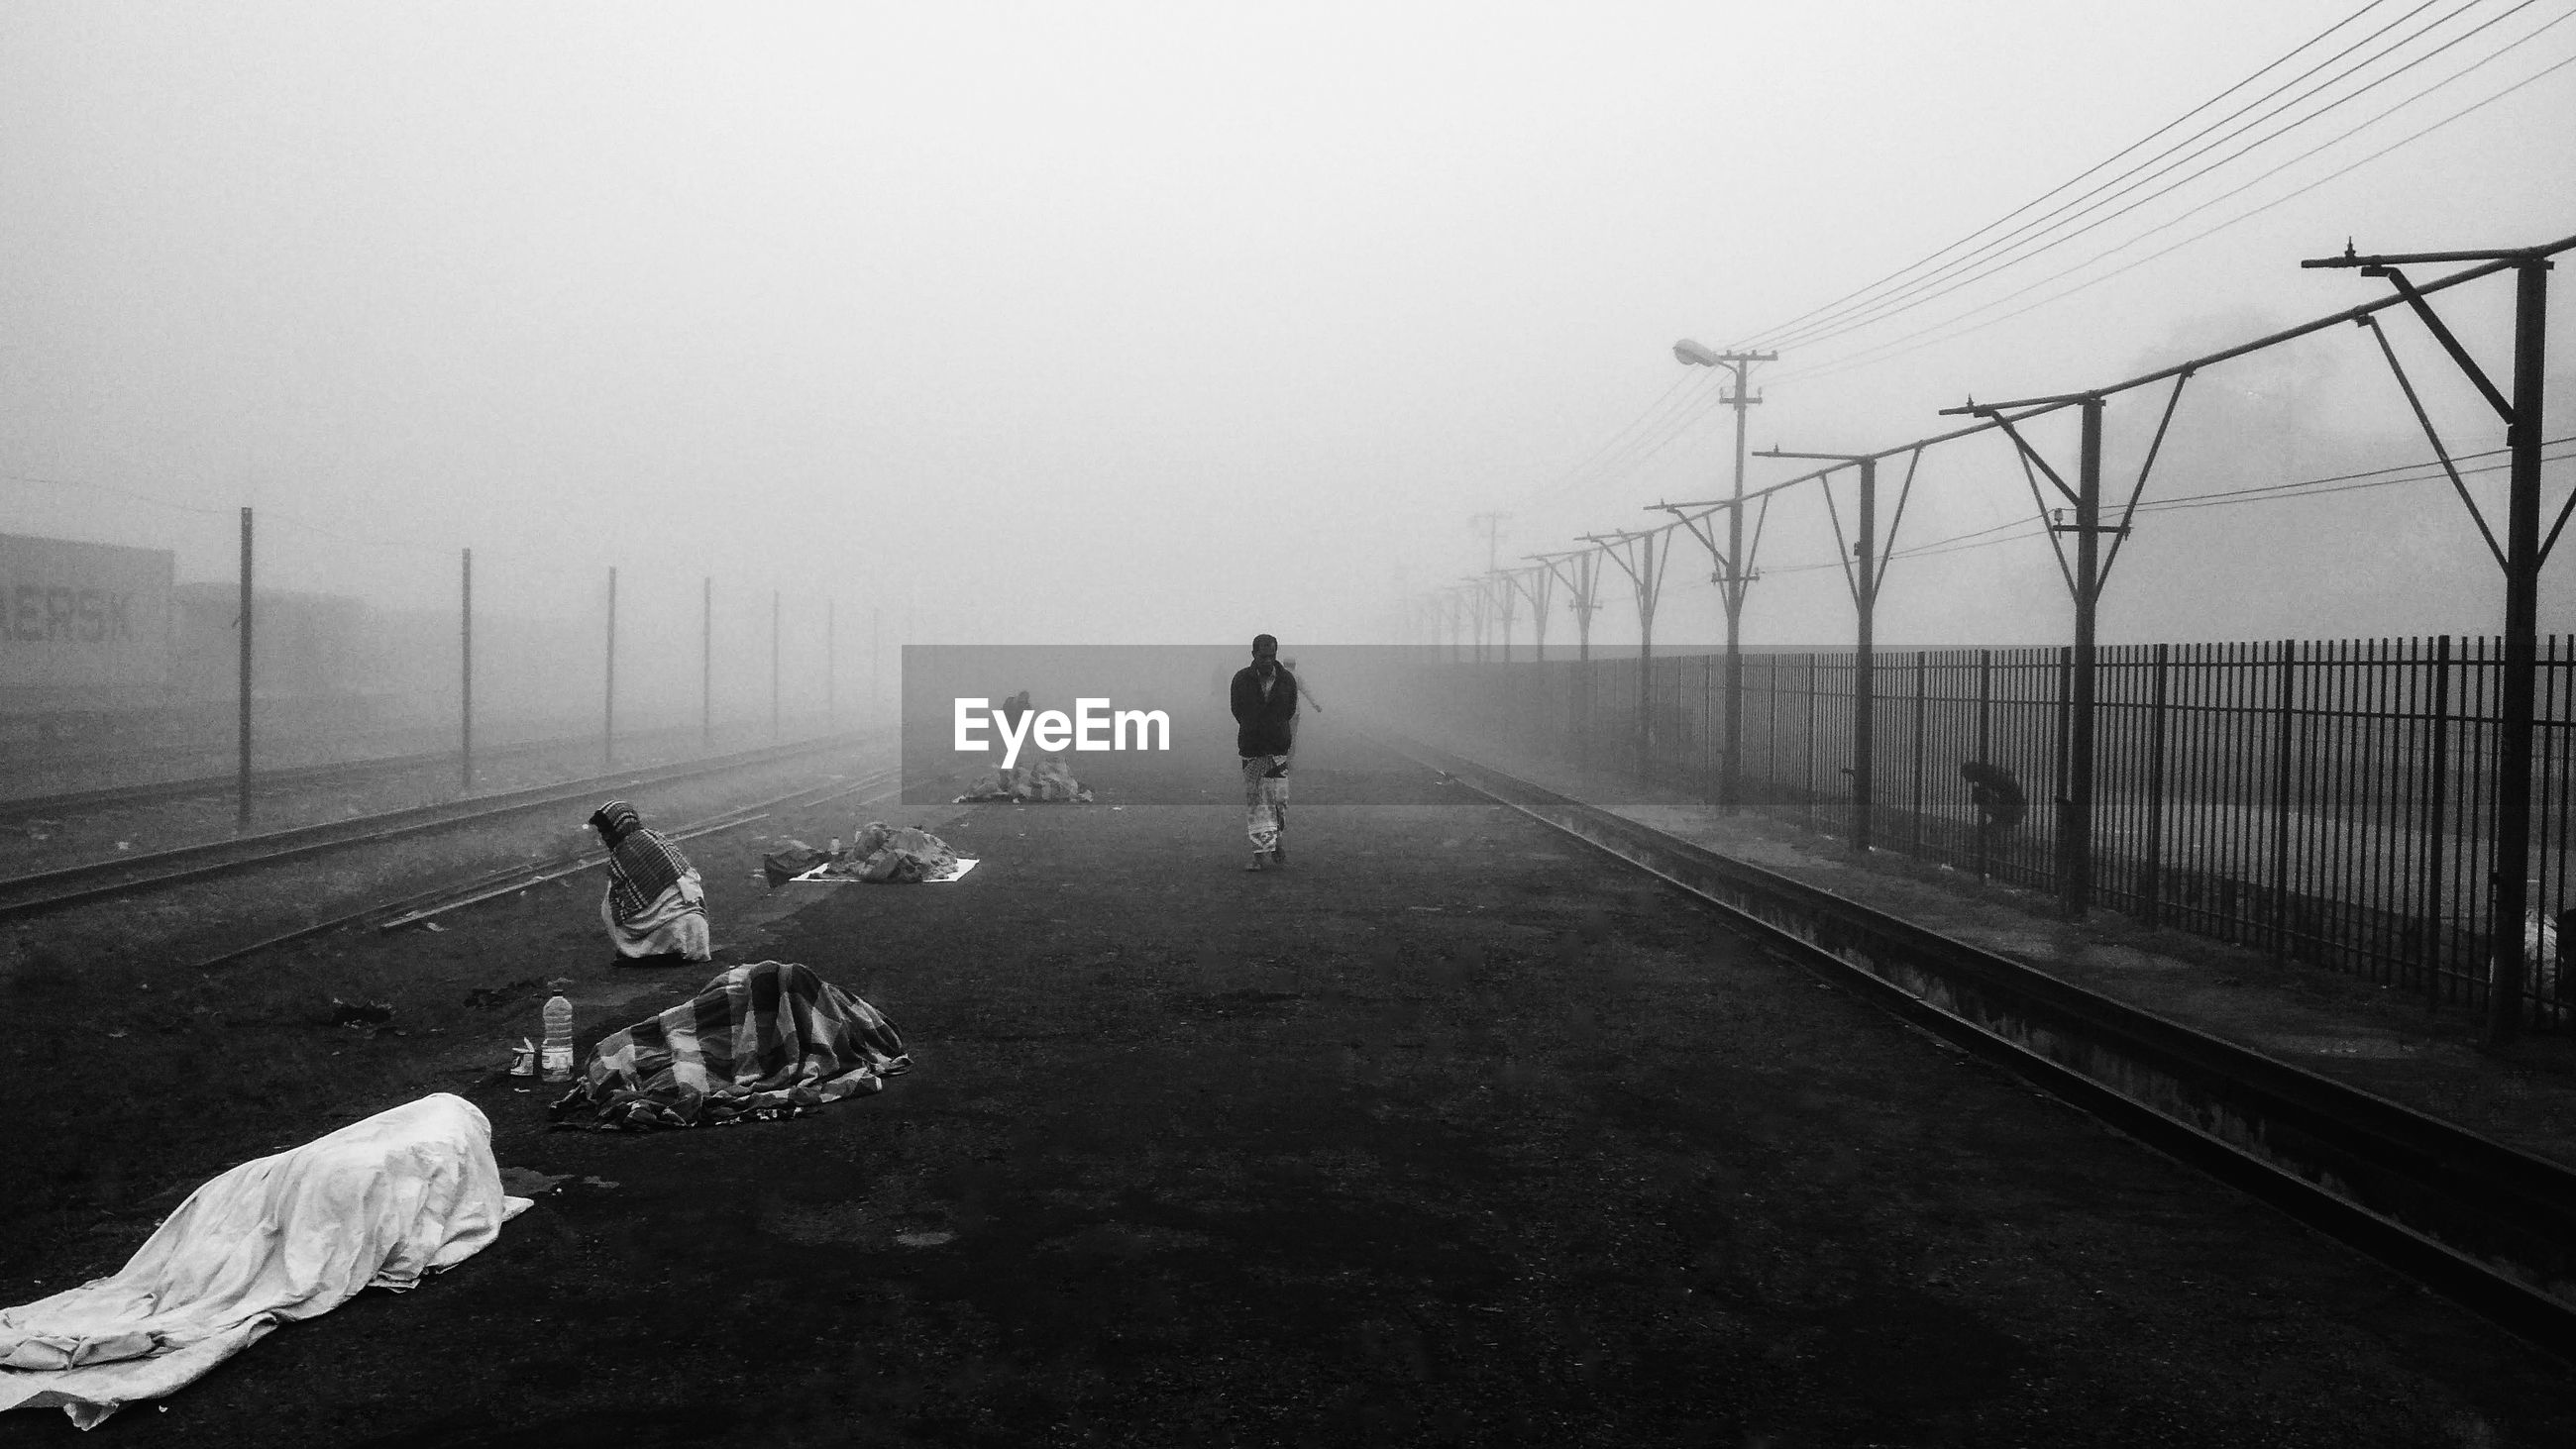 People on empty footpath during foggy weather